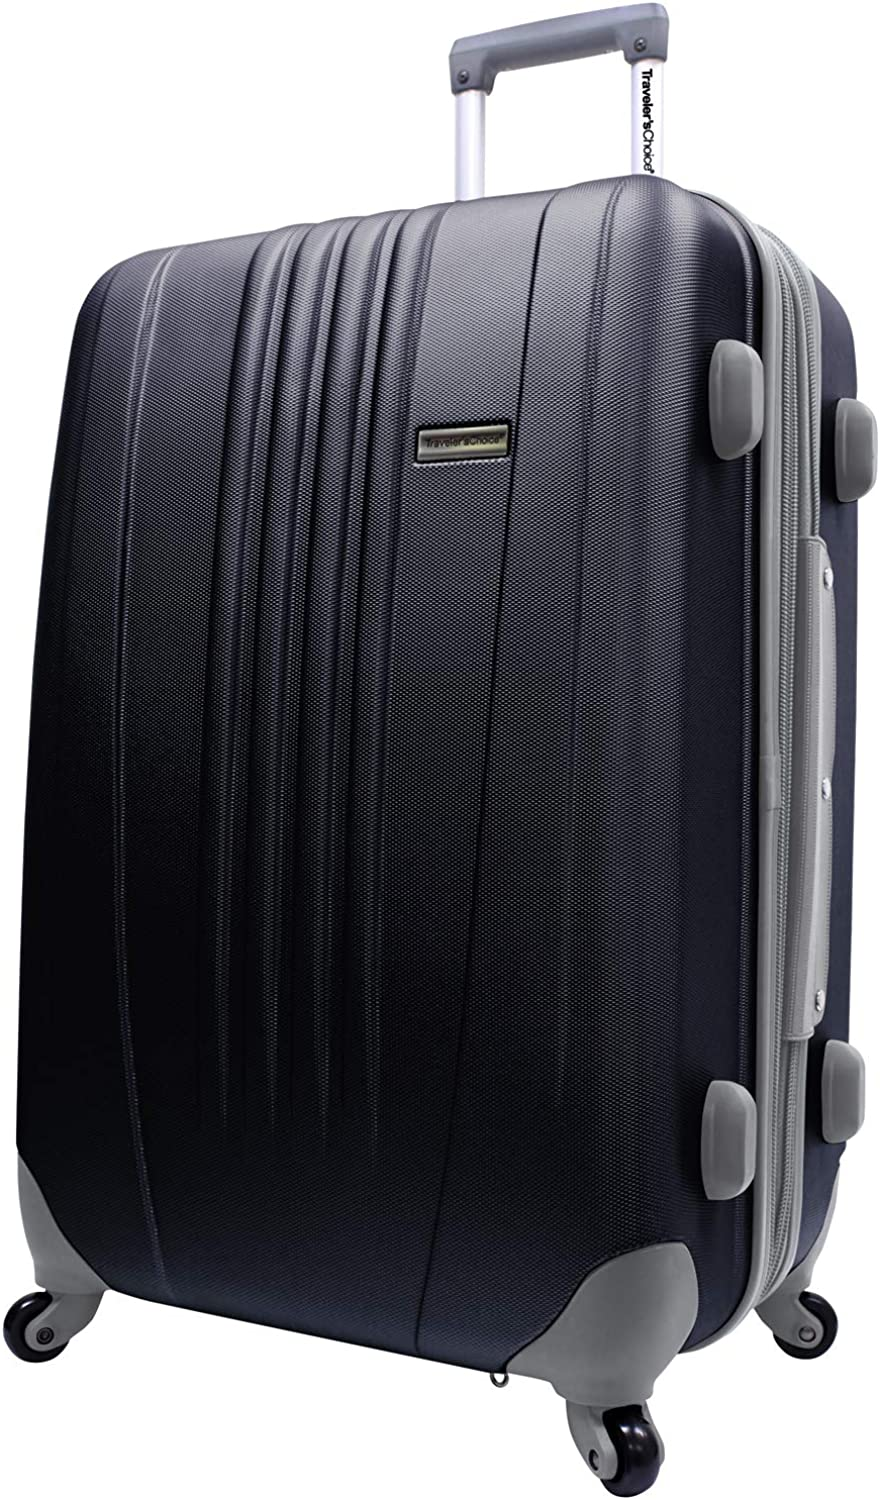 Traveler/'s Choice Toronto 25 Expandable Hardside Spinner Luggage